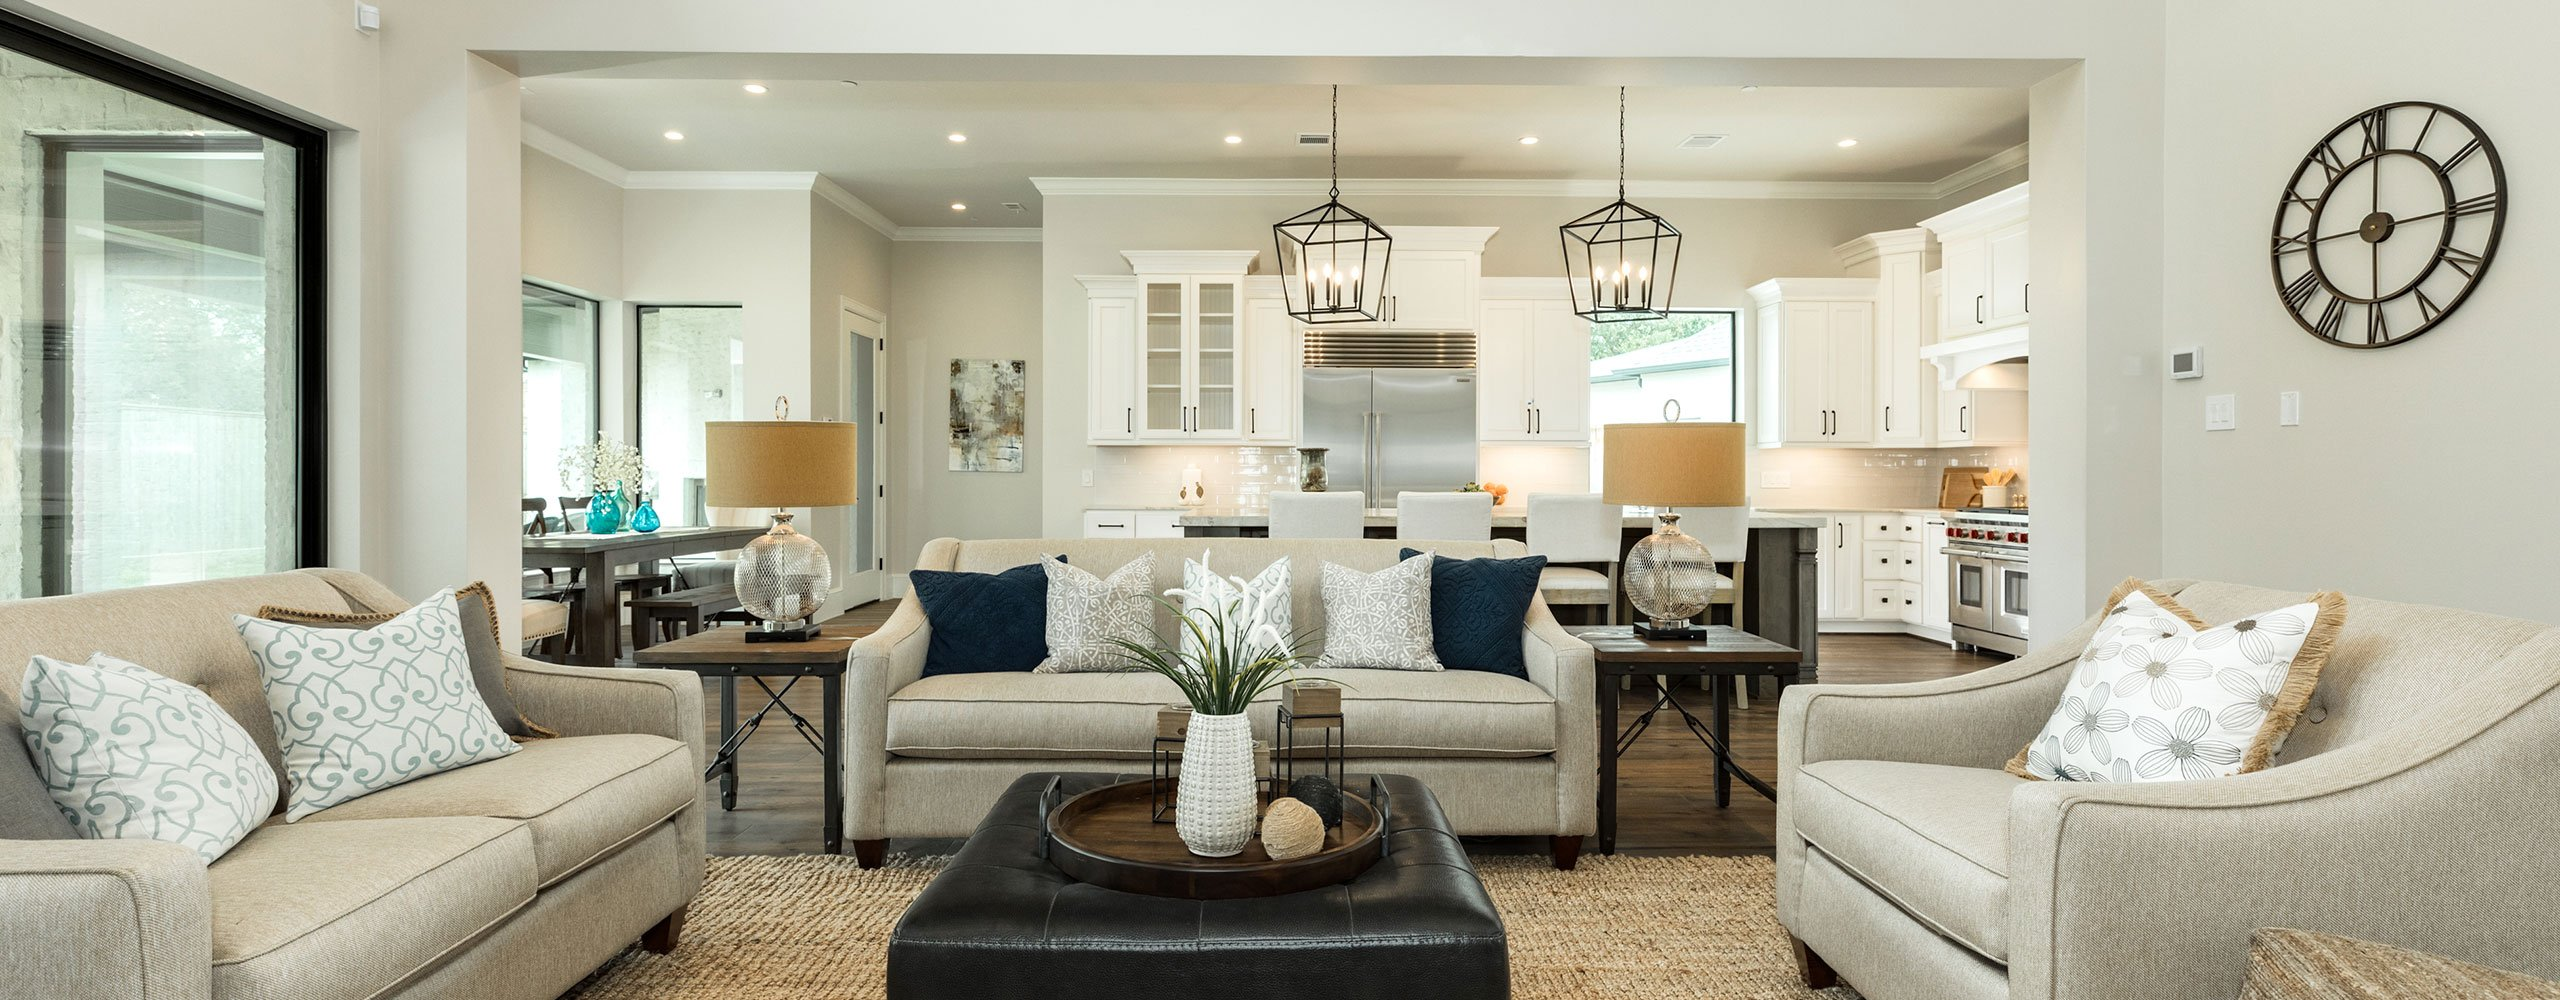 Family room staging in Houston, Texas